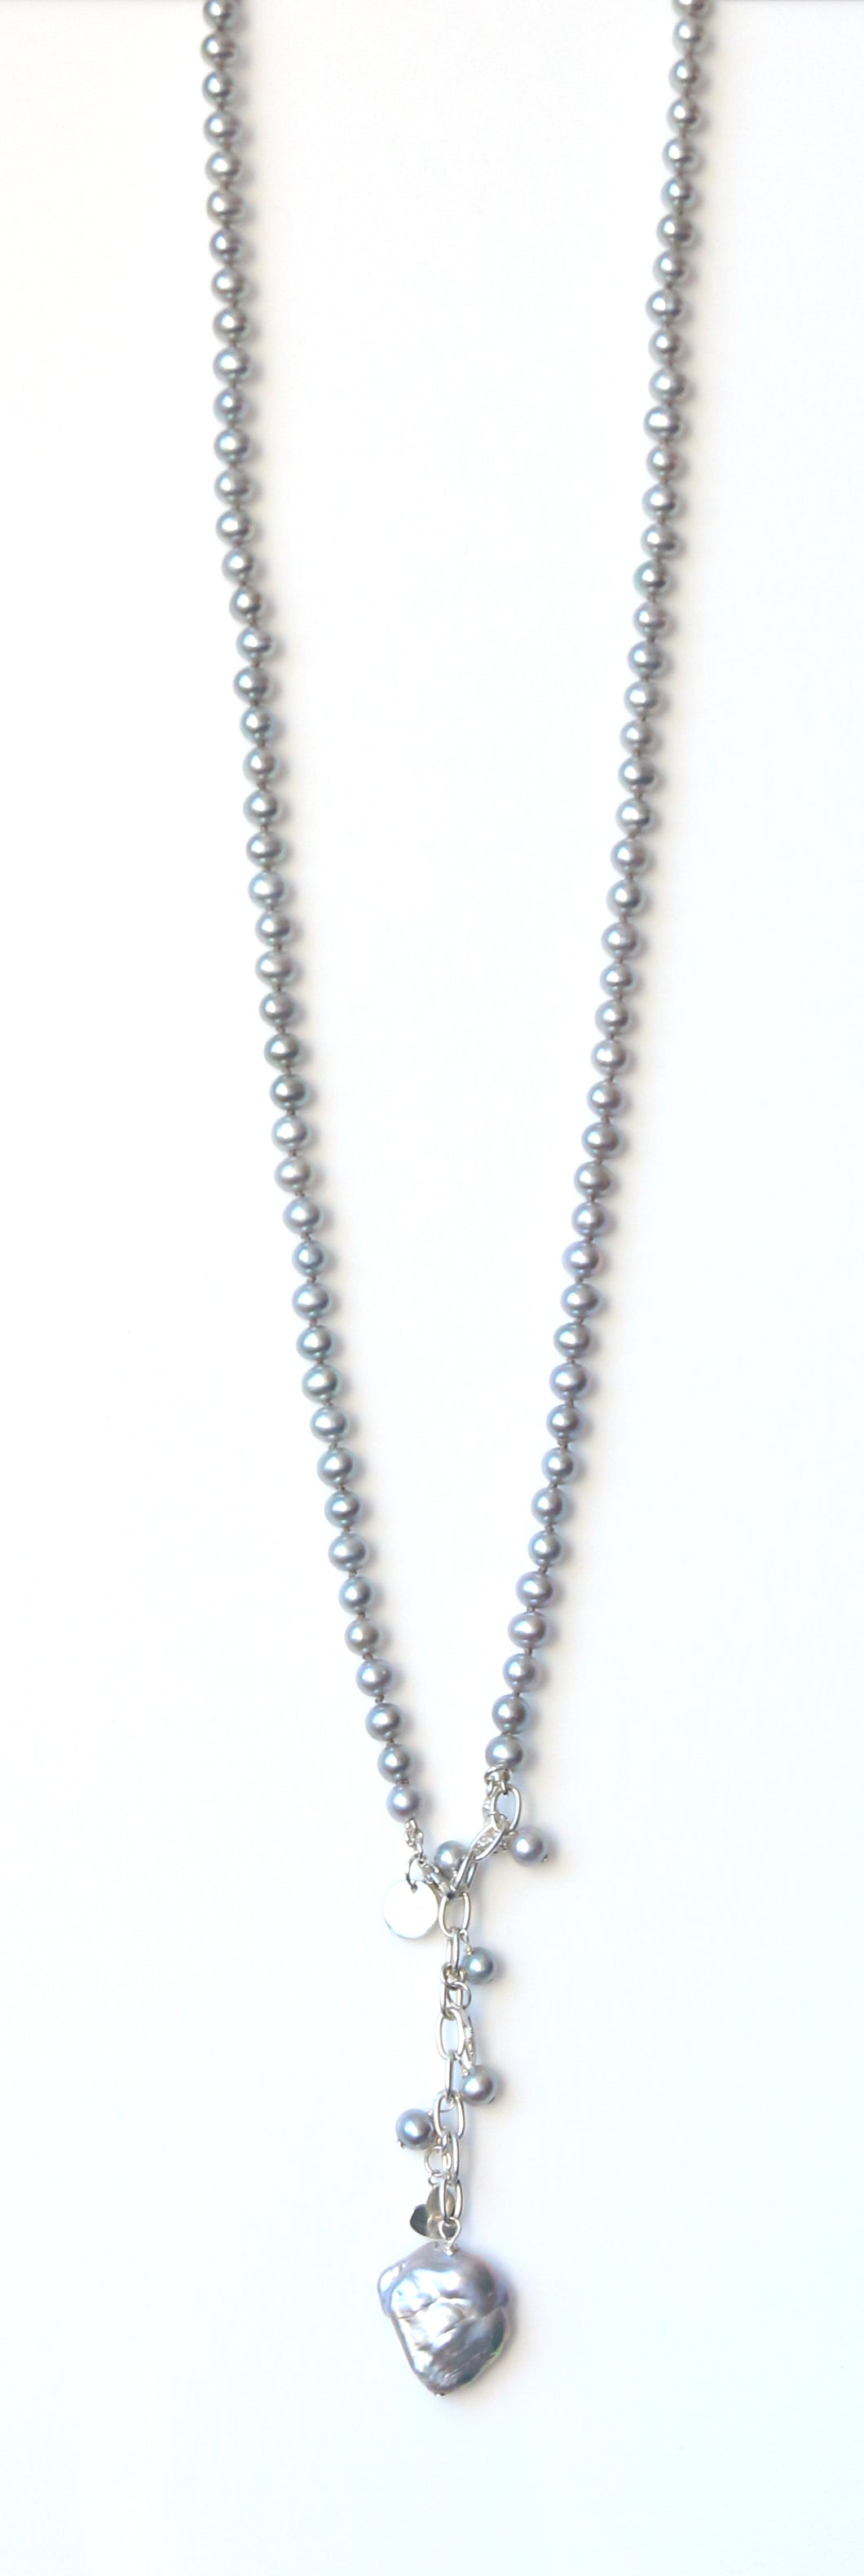 Australian Handmade Grey Long Necklace with Grey Pearls Baroque Pearl and Sterling Silver